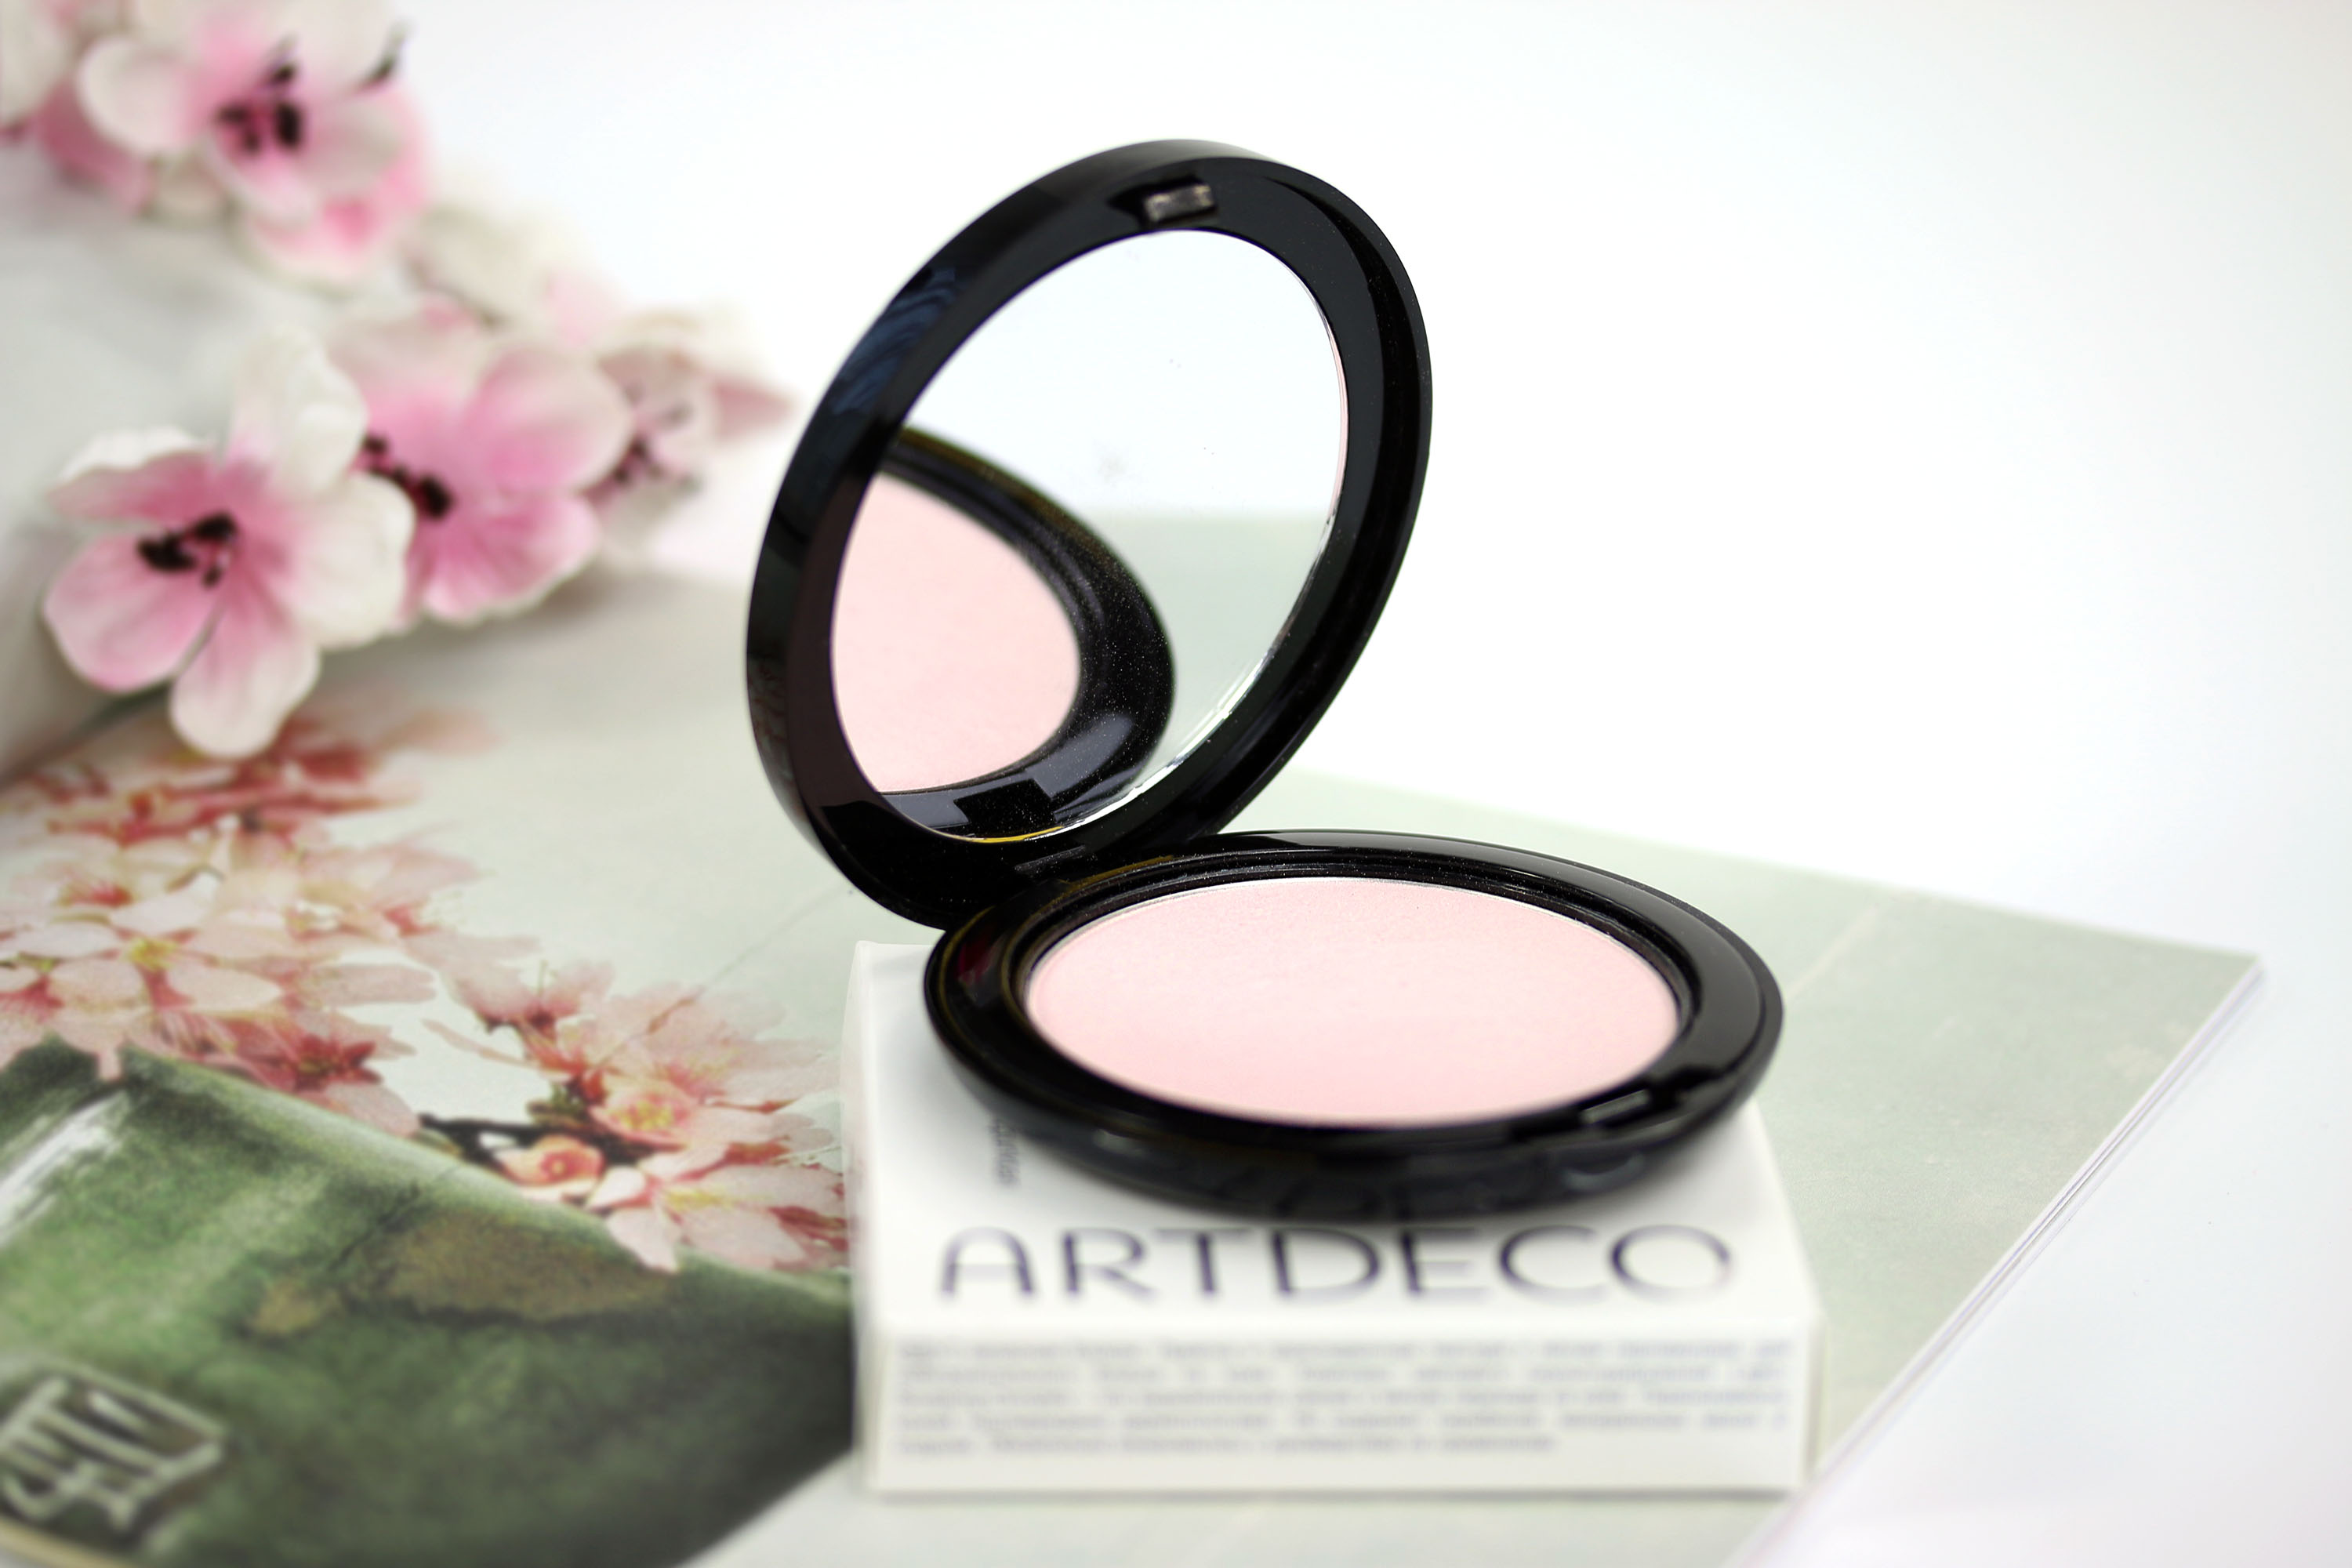 Artdeco Strobing Powder Highlighter